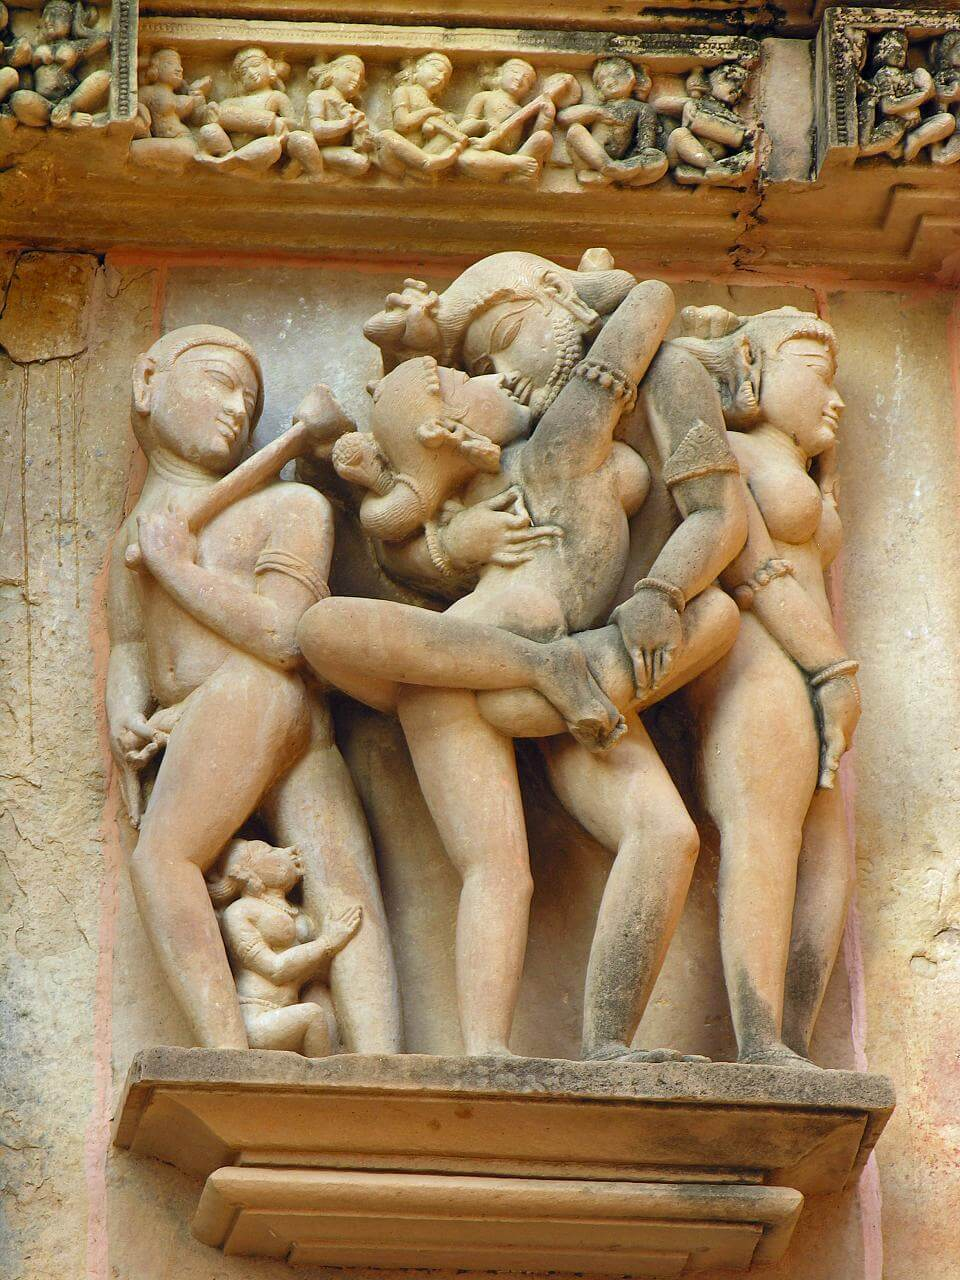 image Tantra the erotic sculptures of khajuraho